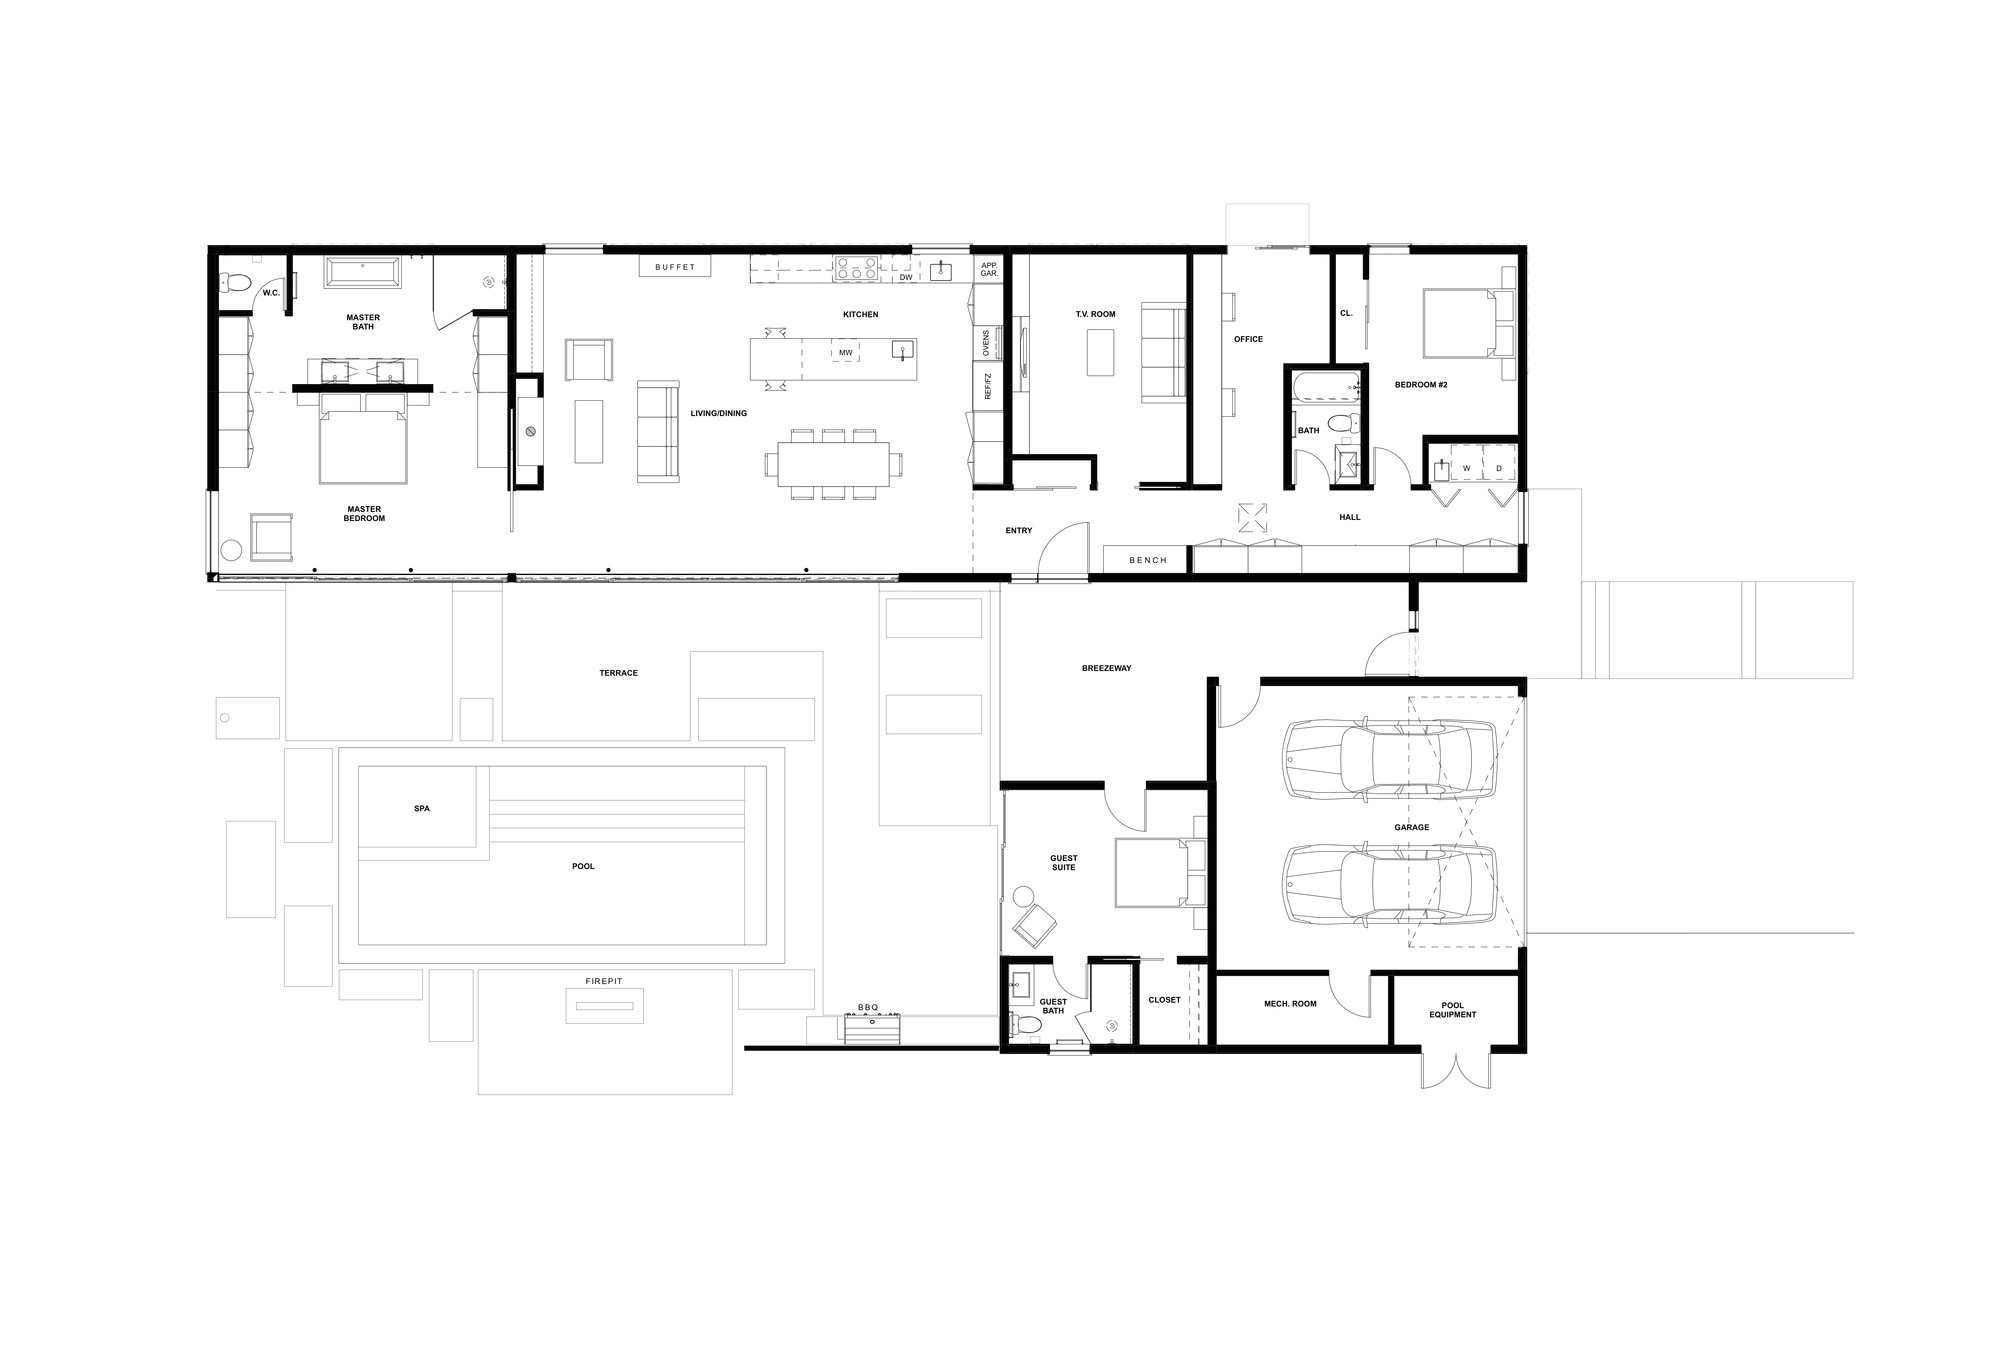 58637906e58ece88210000f9 glass wall house klopf architecture floor plan